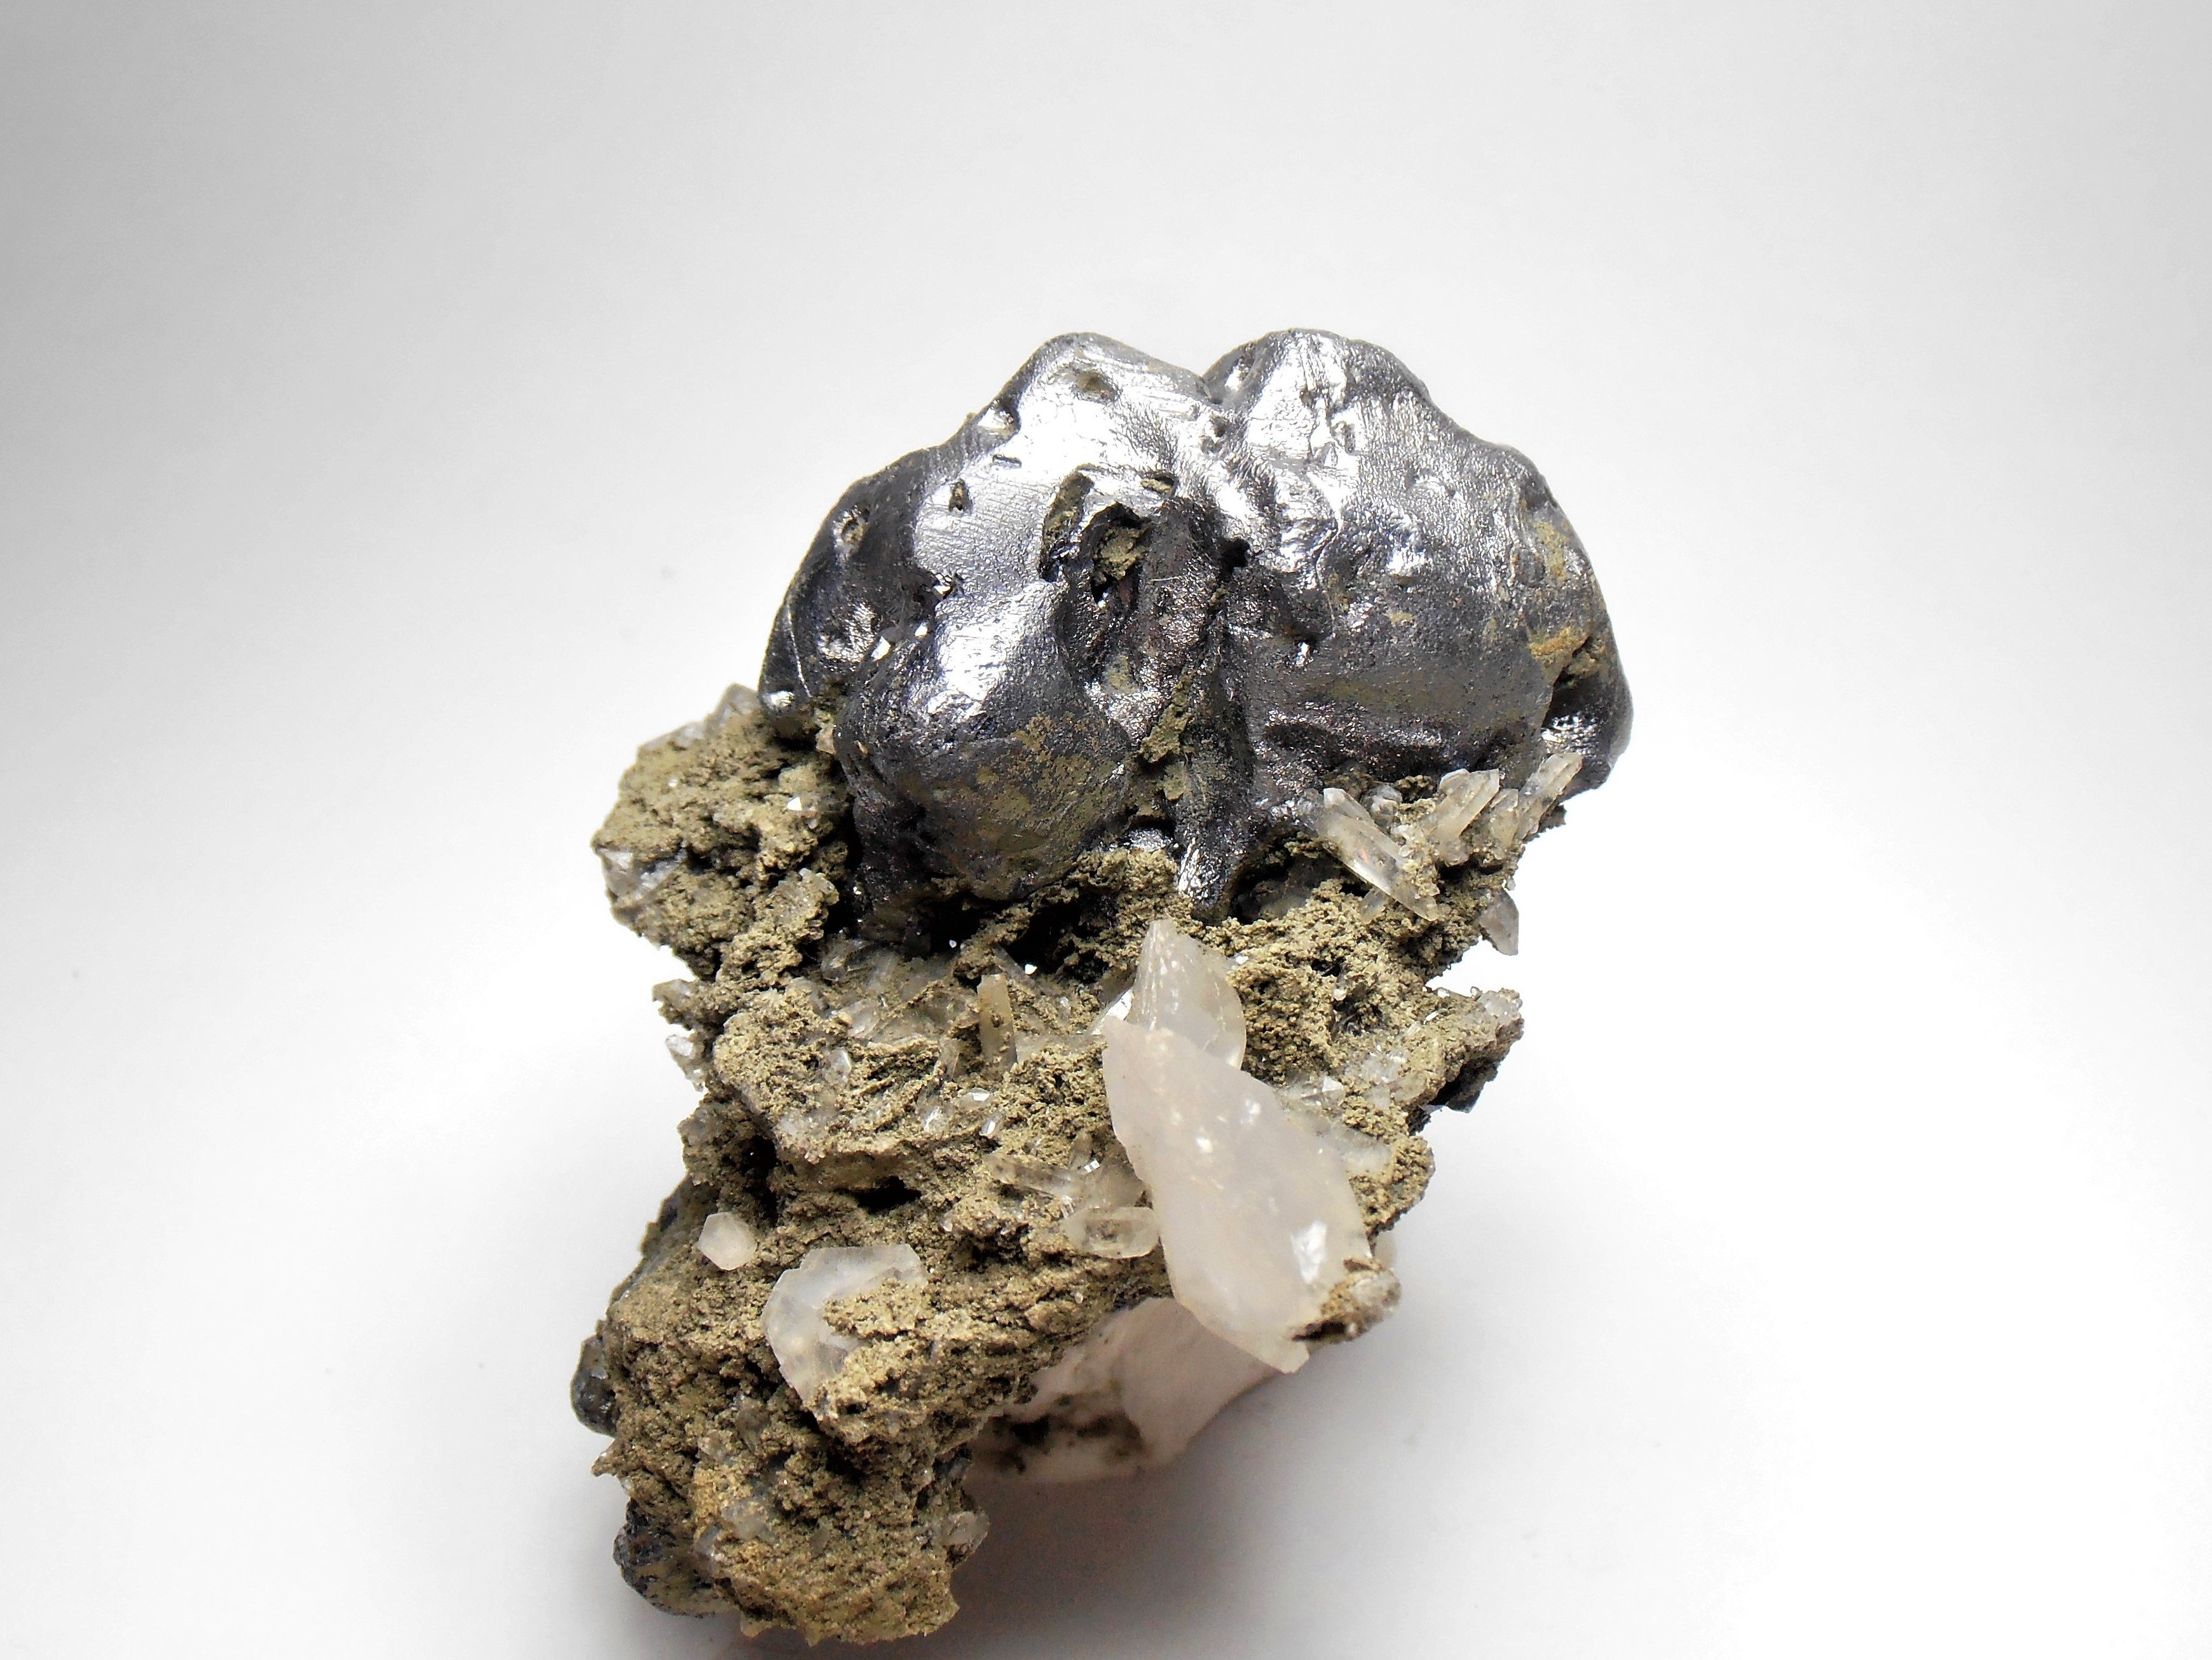 """Galena - """"Melted"""" Crystal Habits from the Madan Ore Field"""